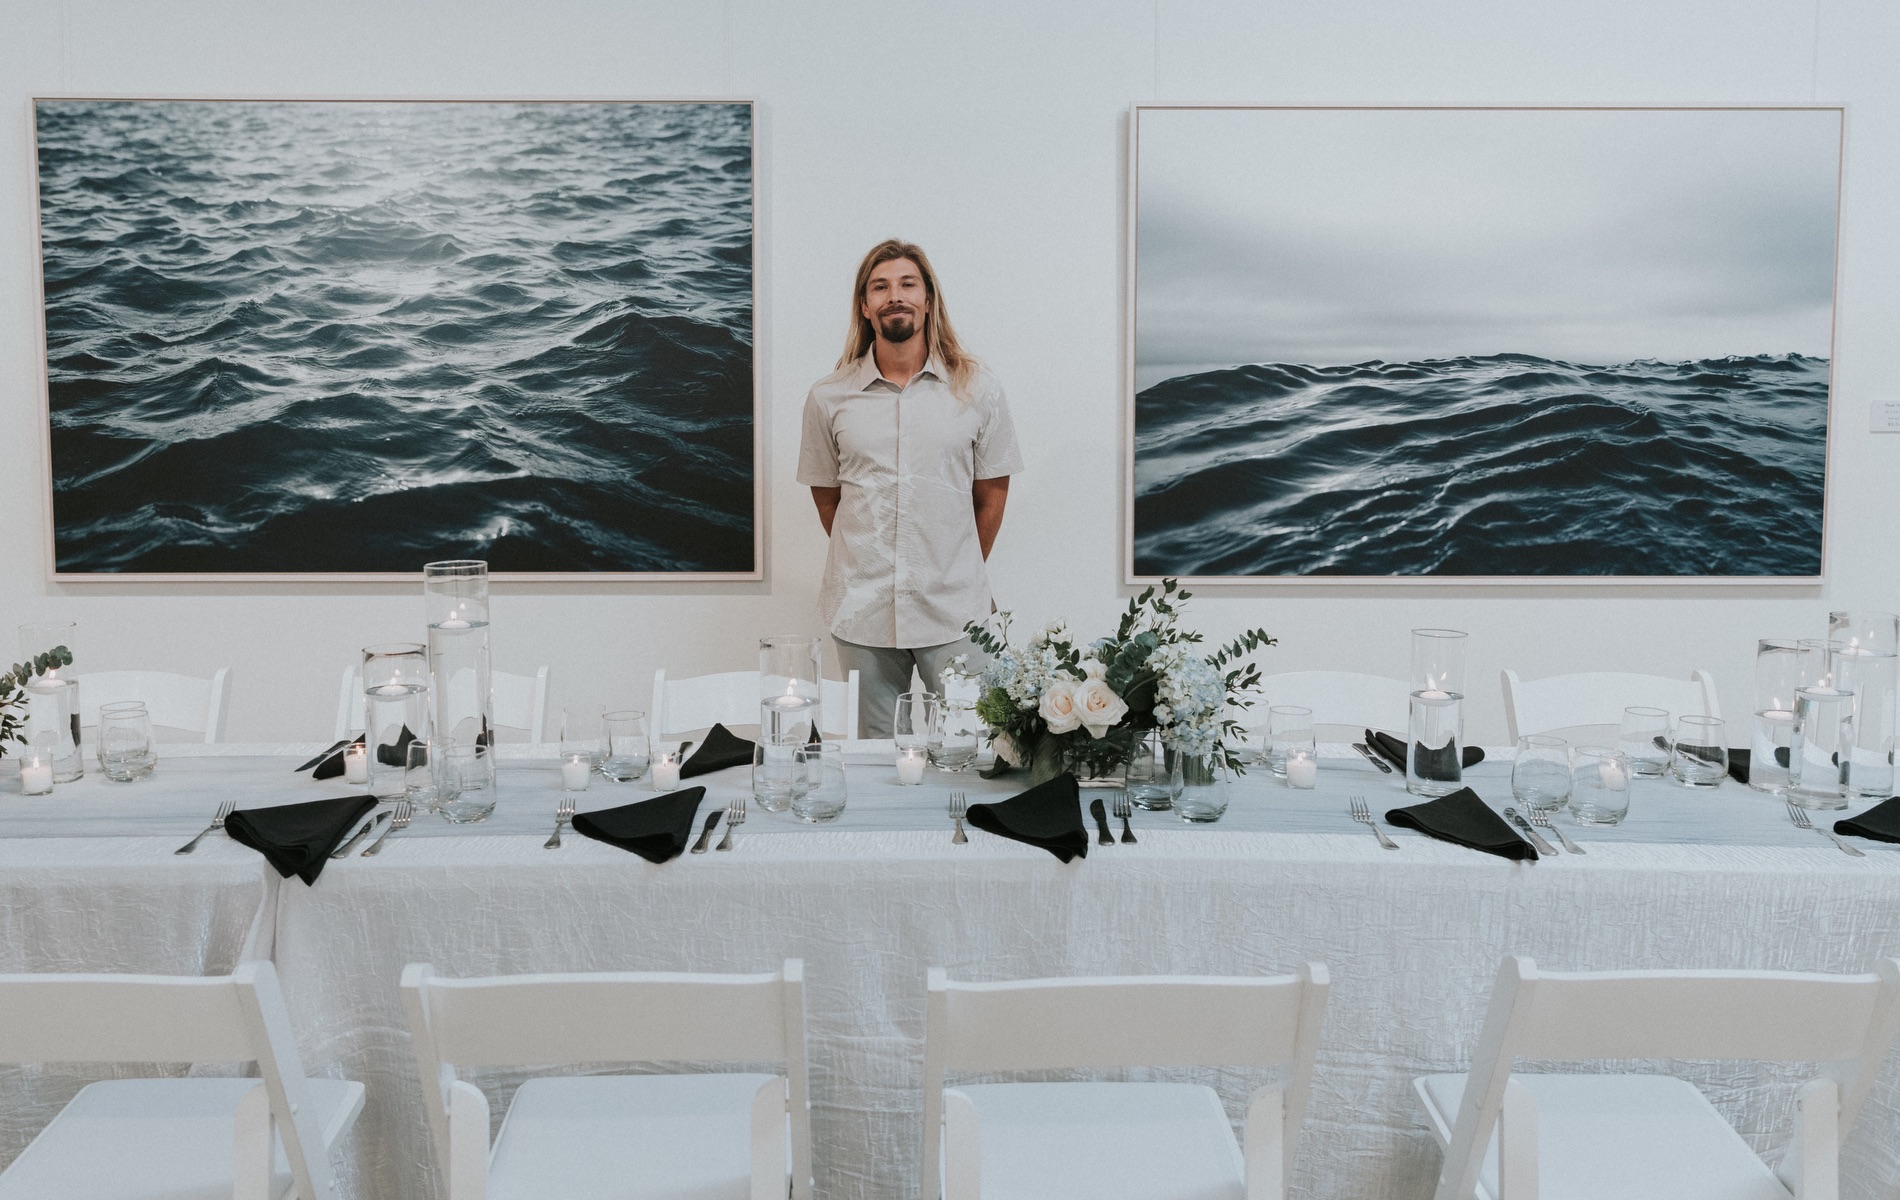 Jonah Allen, An intentional moment, gallery opening, documentary, Shane Reynolds, Photographer, Artistic Photographer, Celebration, Waves, Sand, Dune Lakes, Nature